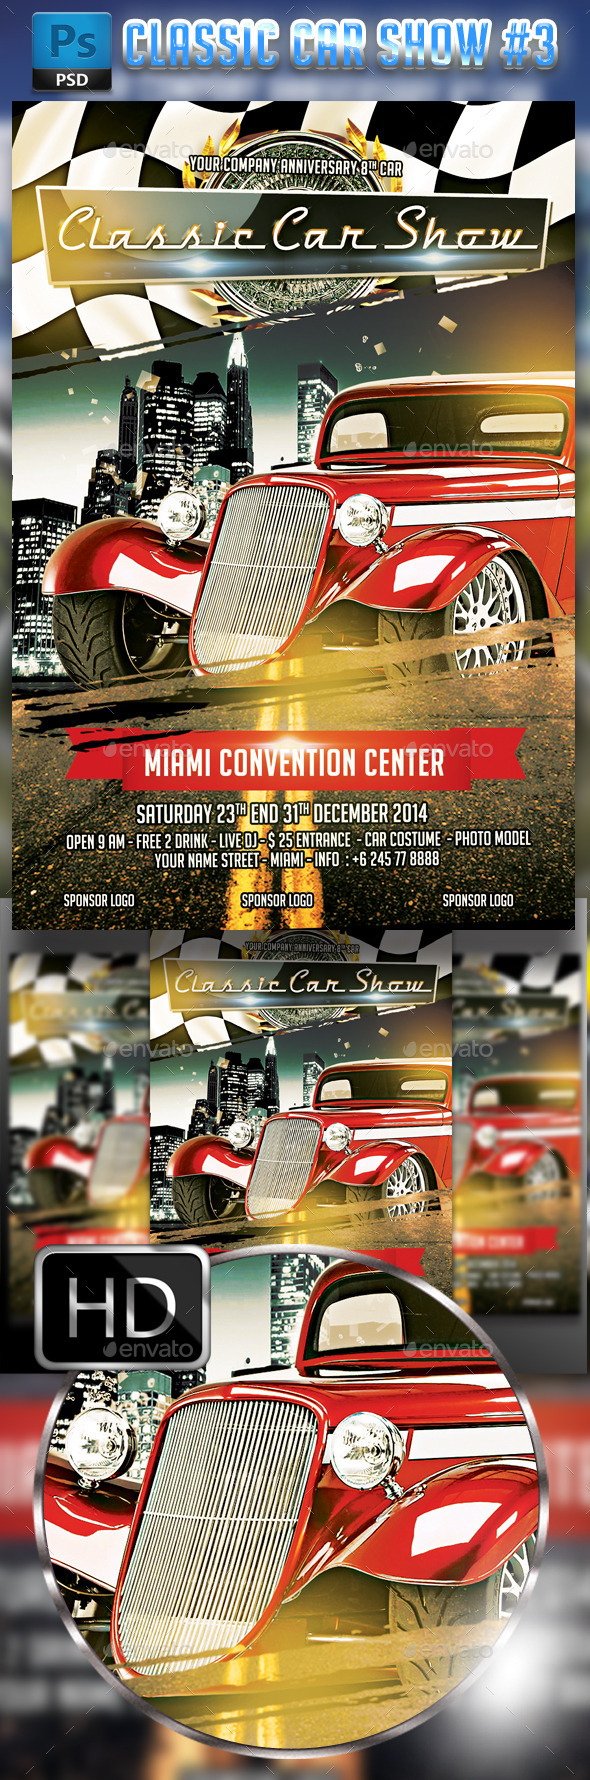 Classic Car Show flyer #3 - Events Flyers